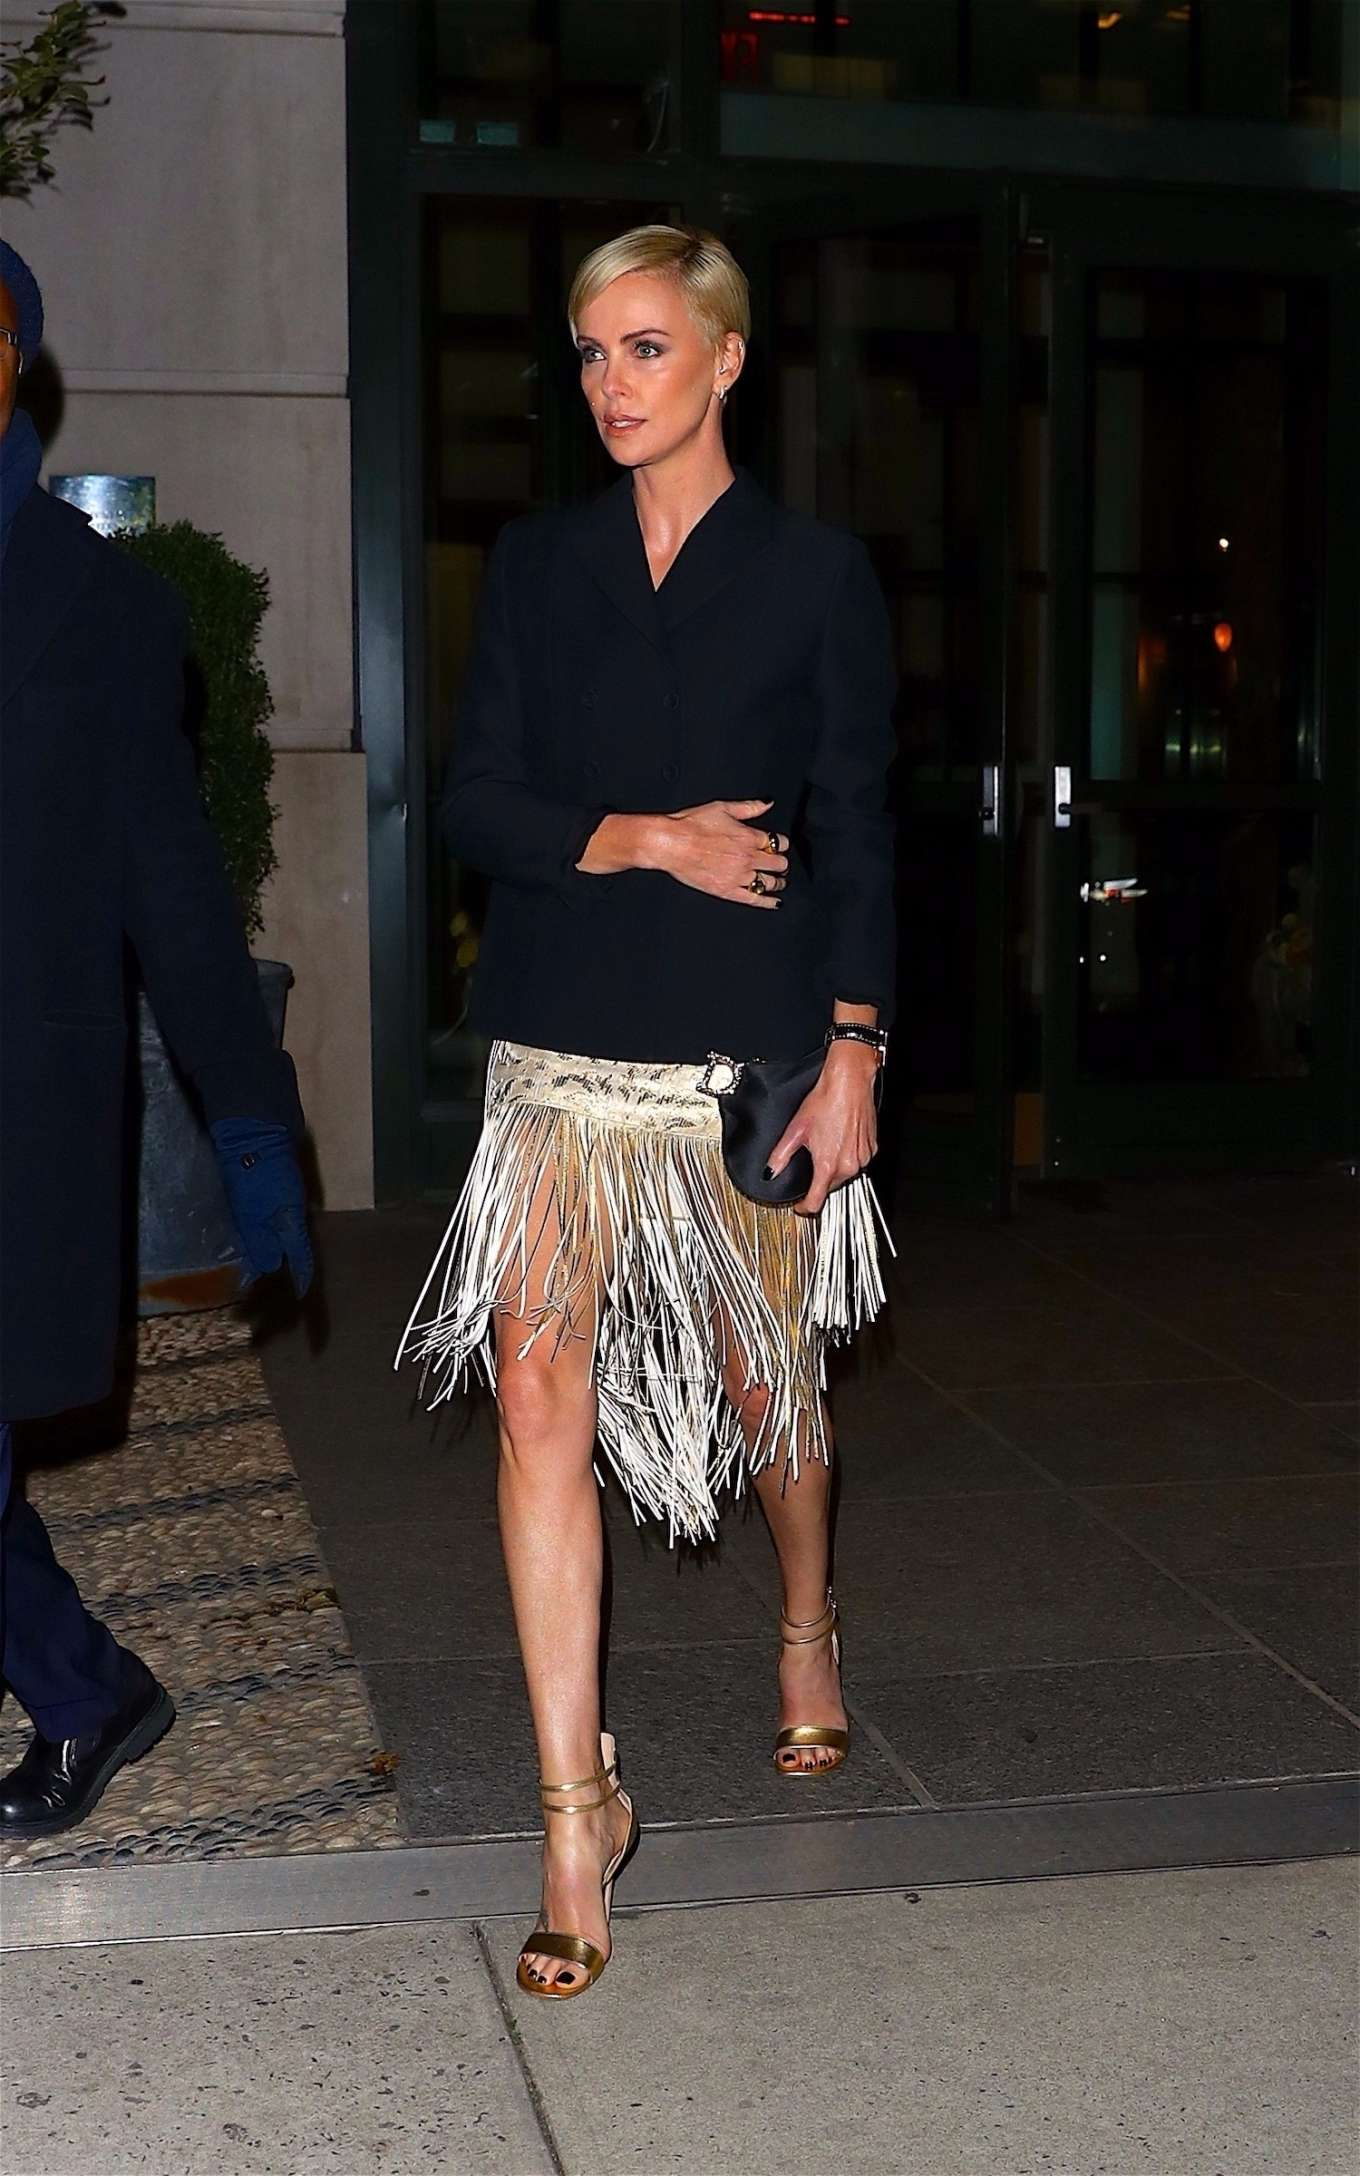 Charlize Theron 2019 : Charlize Theron – Heads to an event in New York City-10